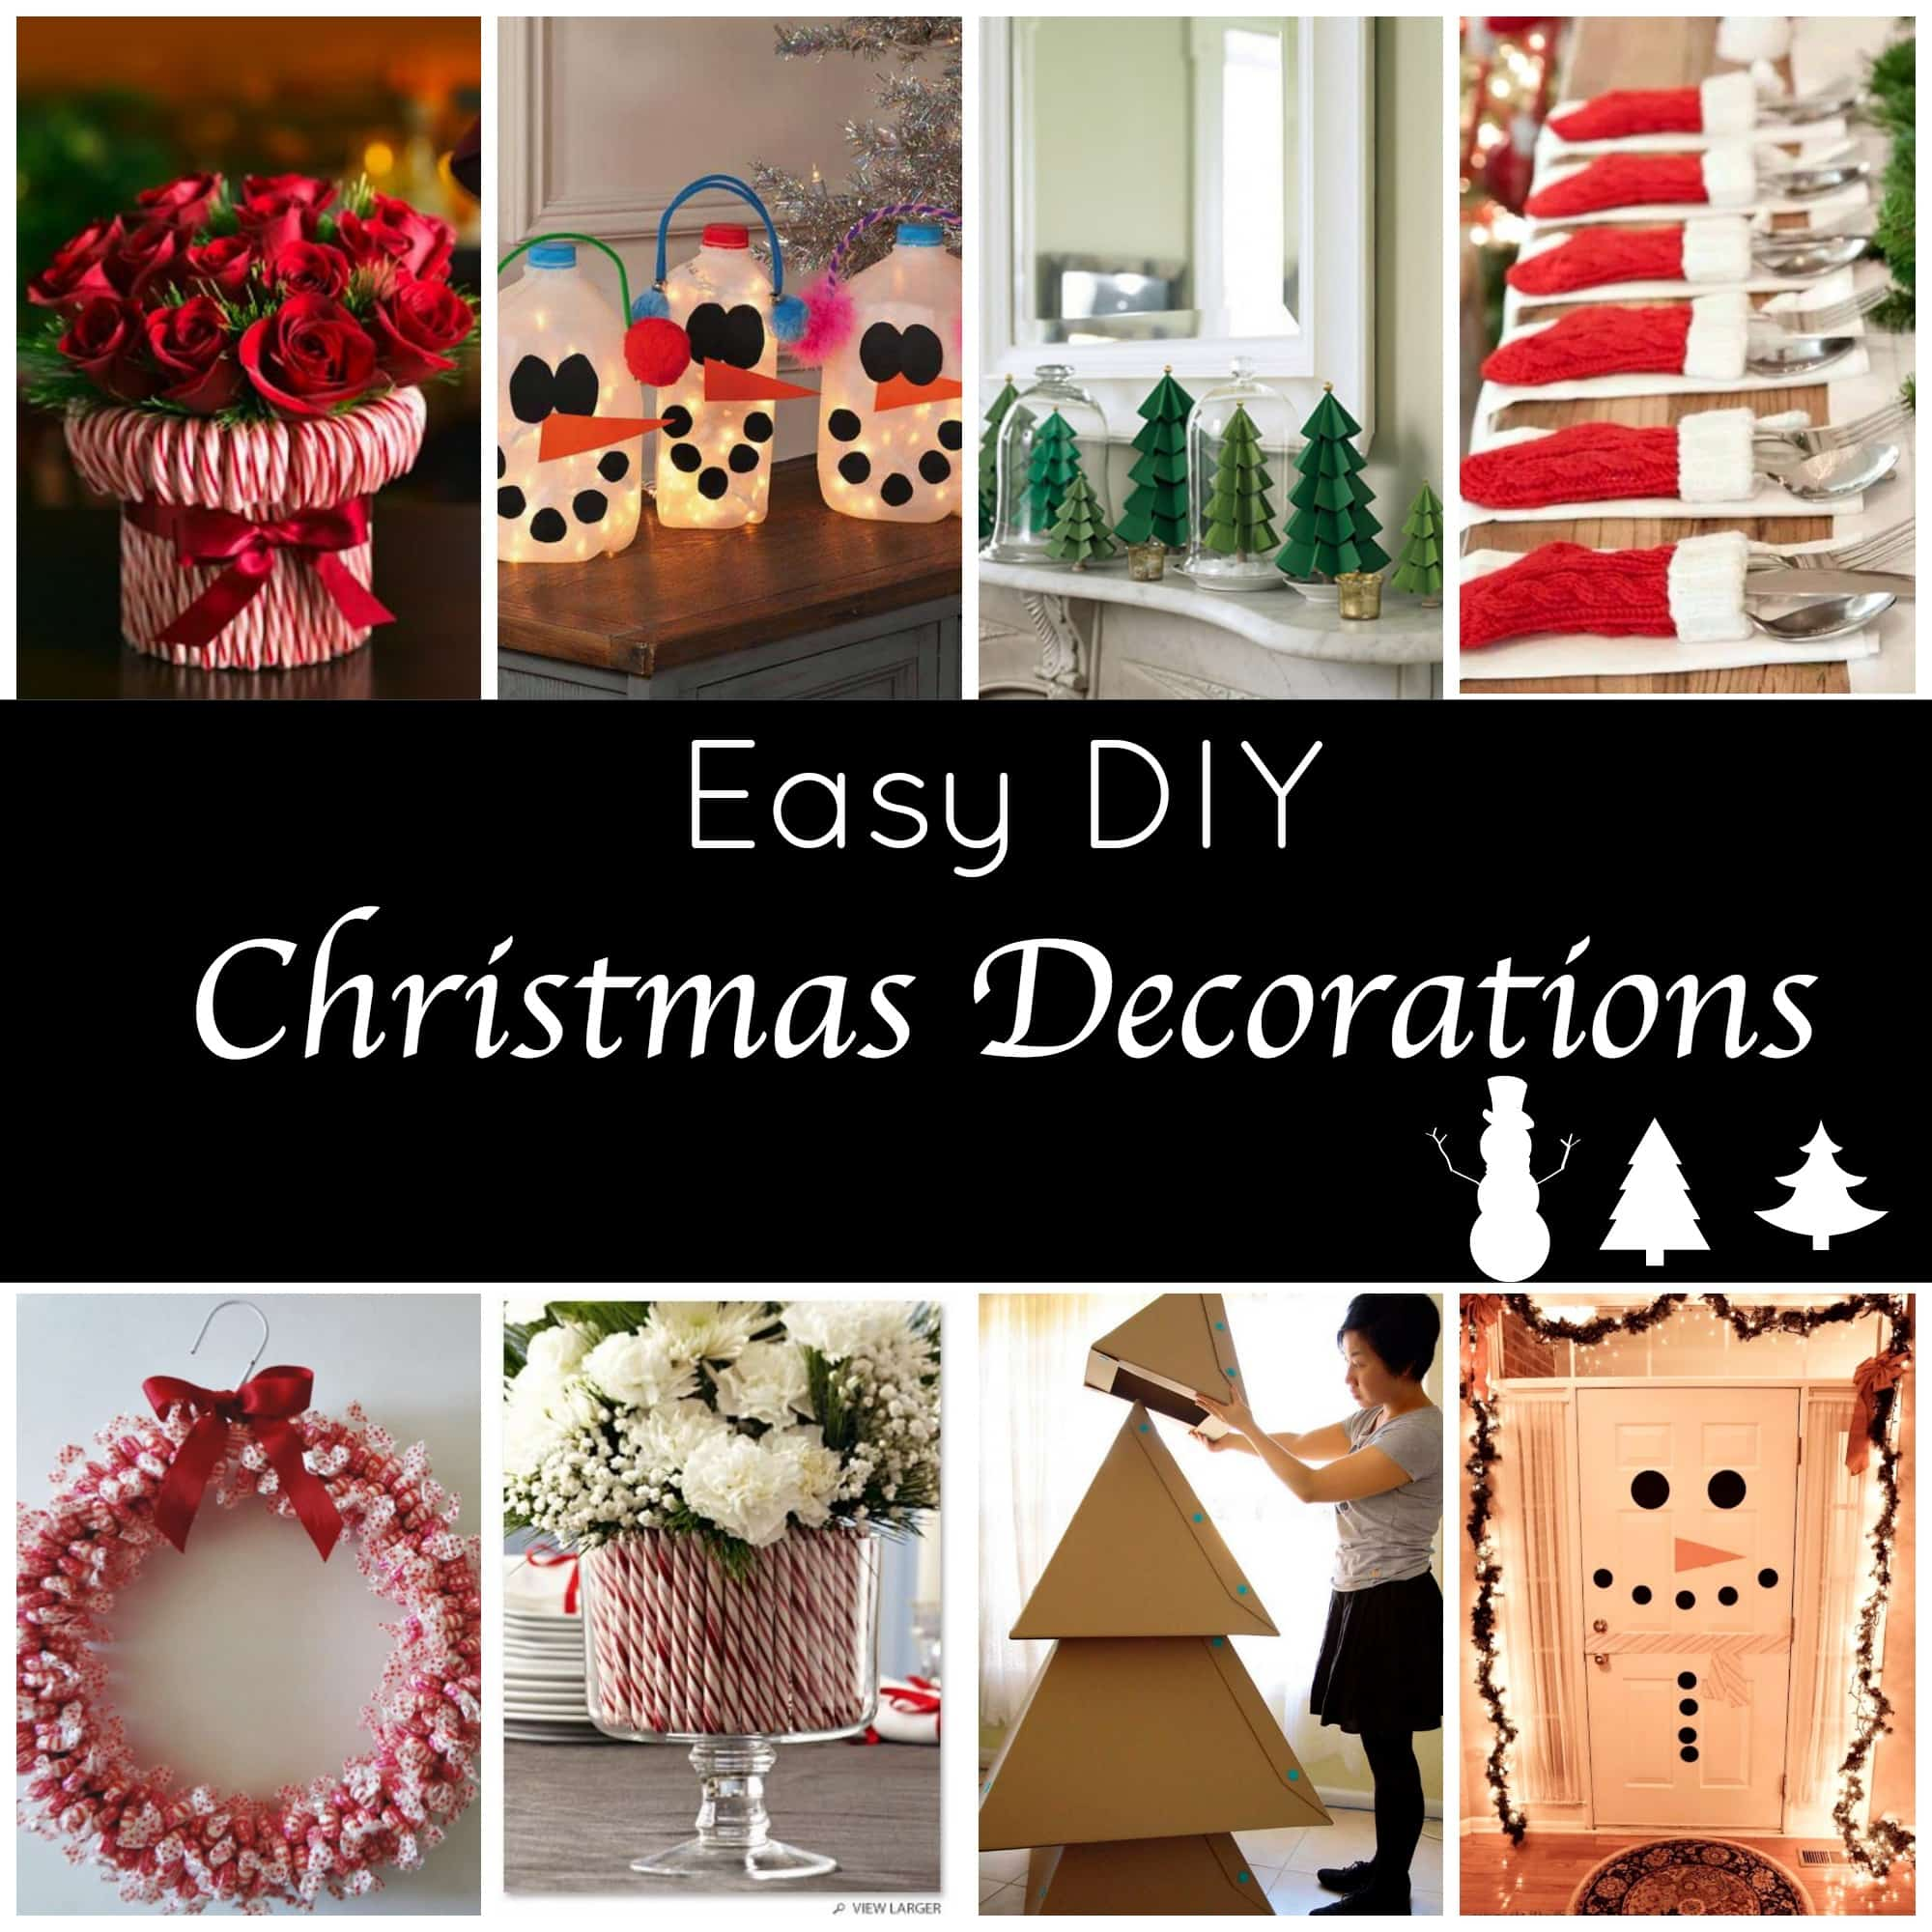 Homemade Decoration Ideas: 10 Tips For A Stress-Free Holiday Season